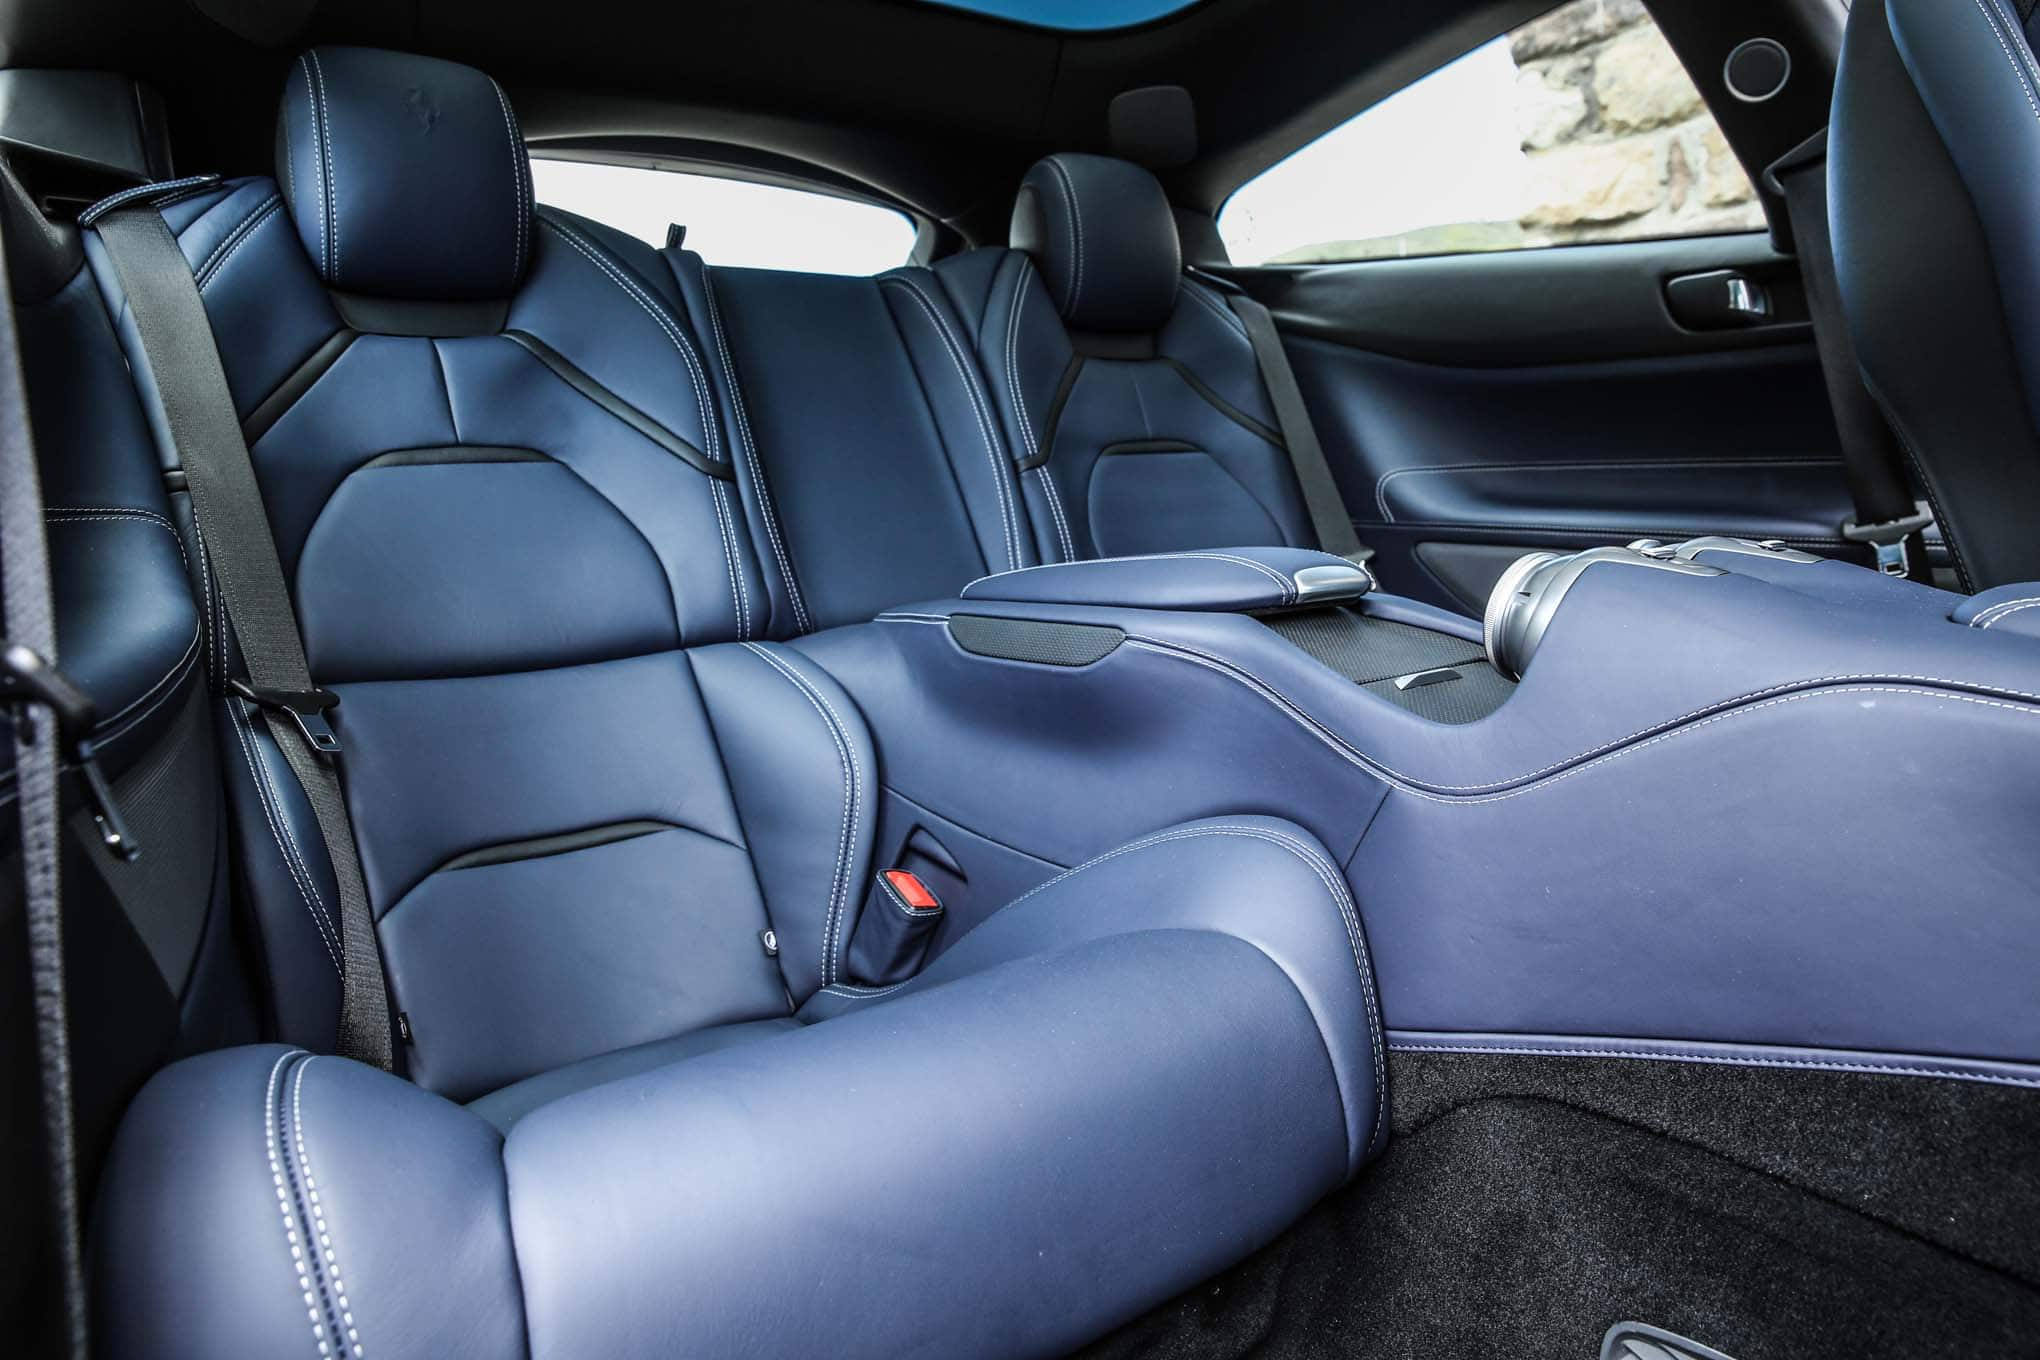 2017 ferrari gtc4lusso rear interior seats. Black Bedroom Furniture Sets. Home Design Ideas